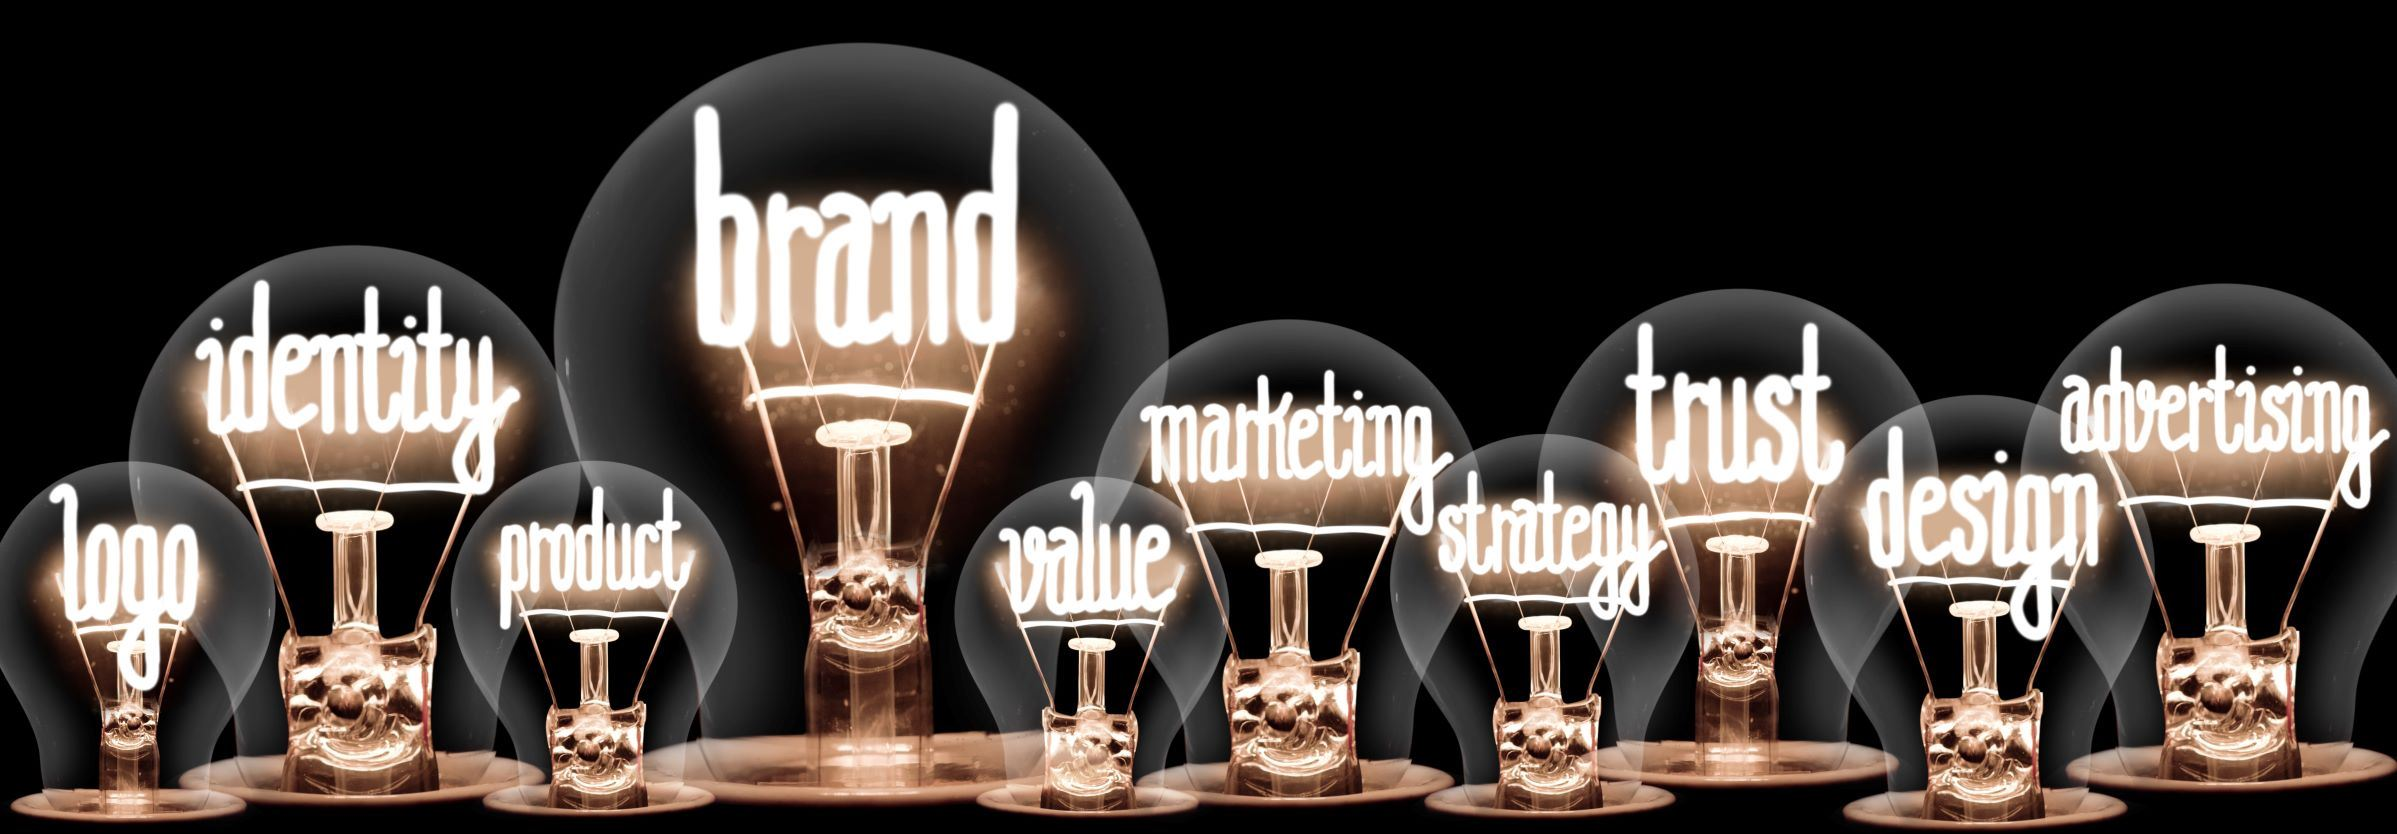 Branding-Lightbulbs